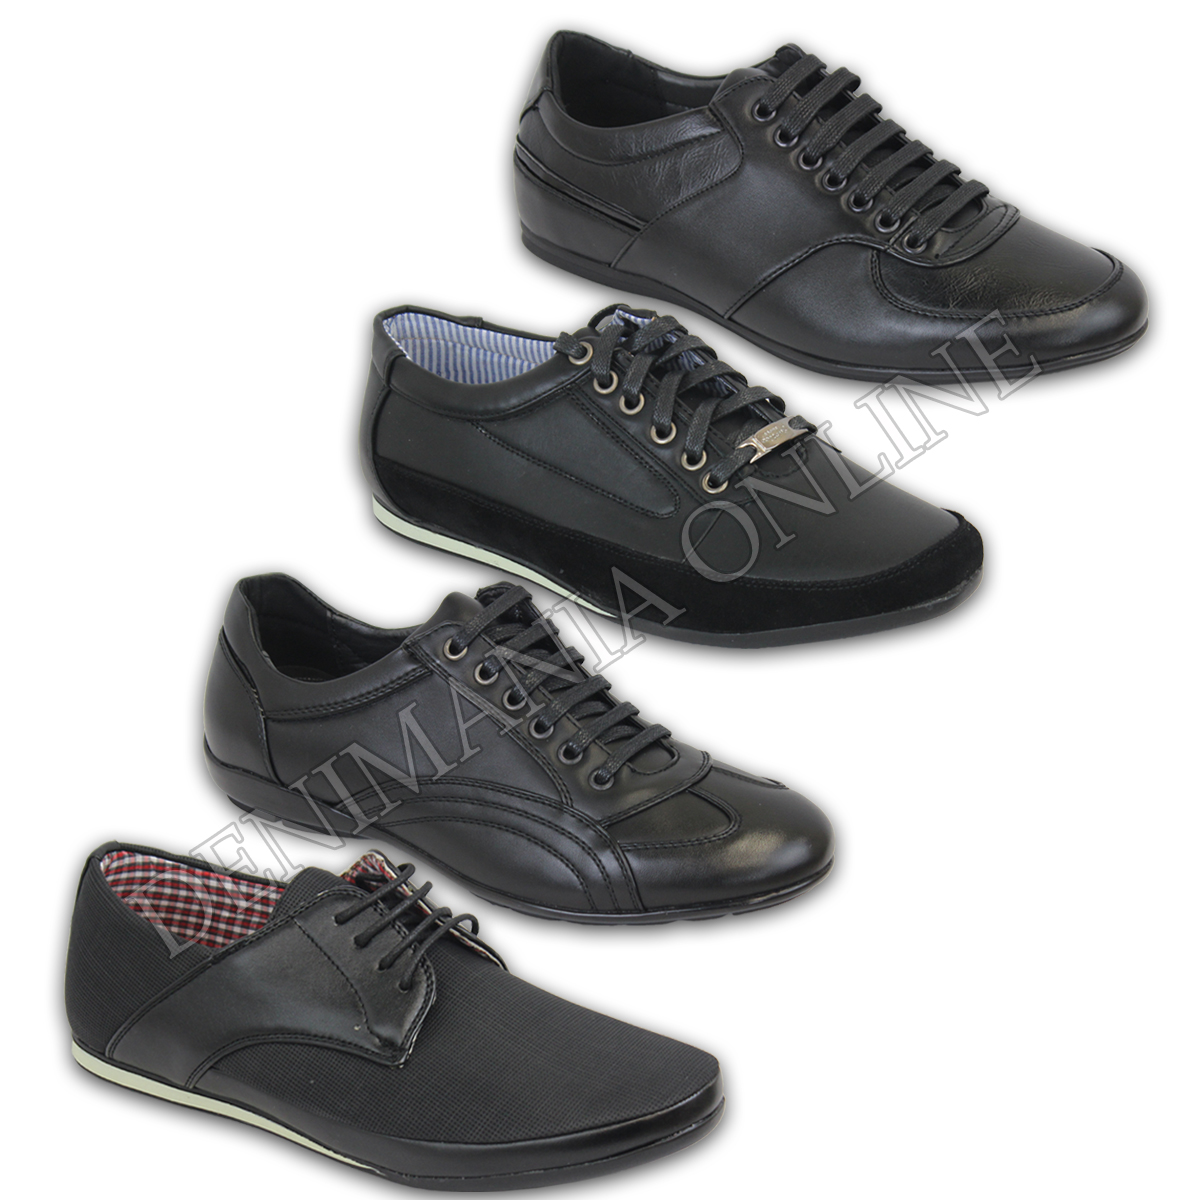 28d586e66d0d6 Details about mens pump black lace up shoes sneakers fashion casual party leather  trainers